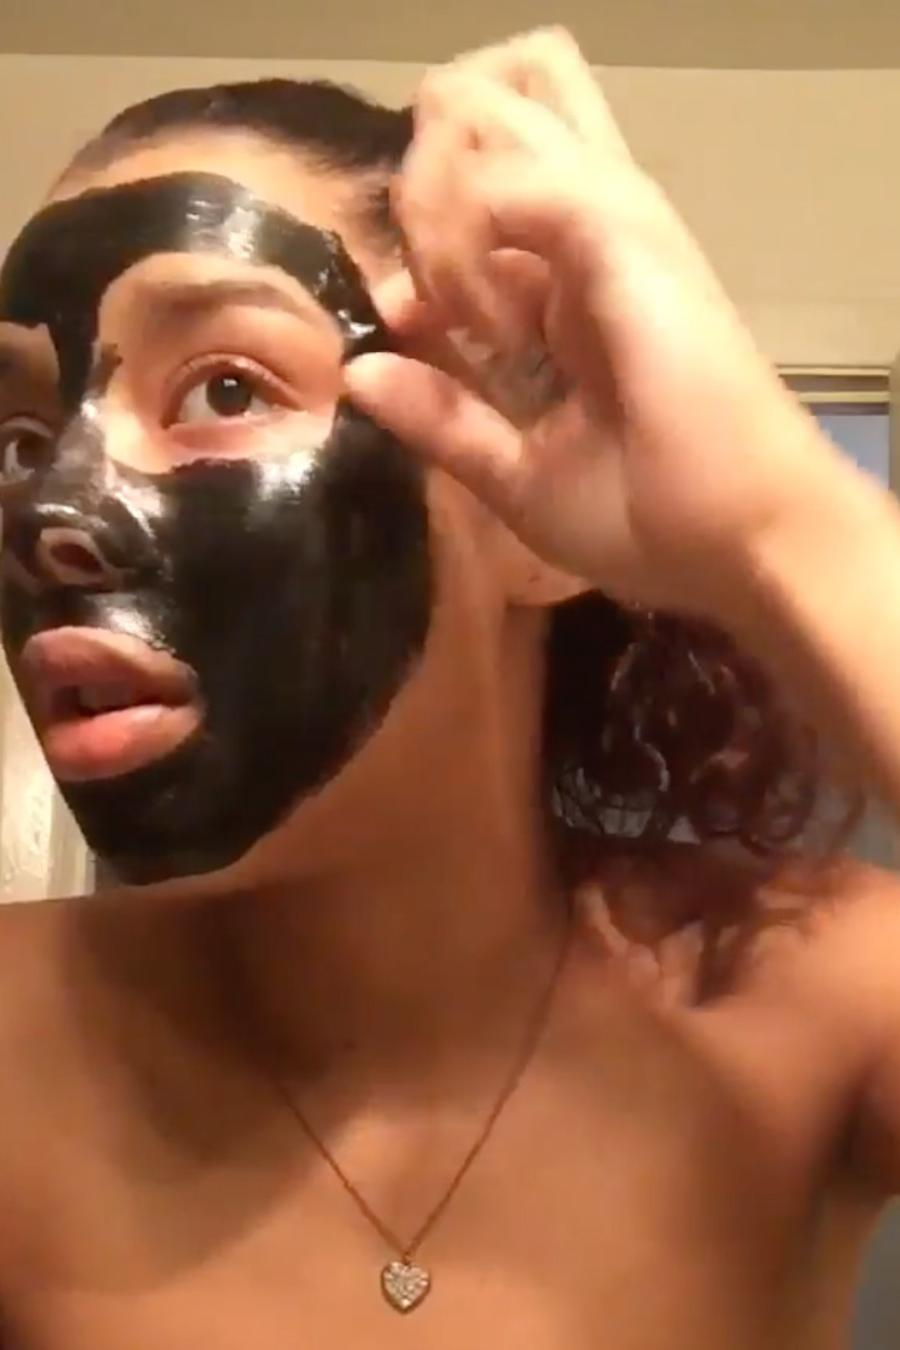 Teen peels off painful face mask